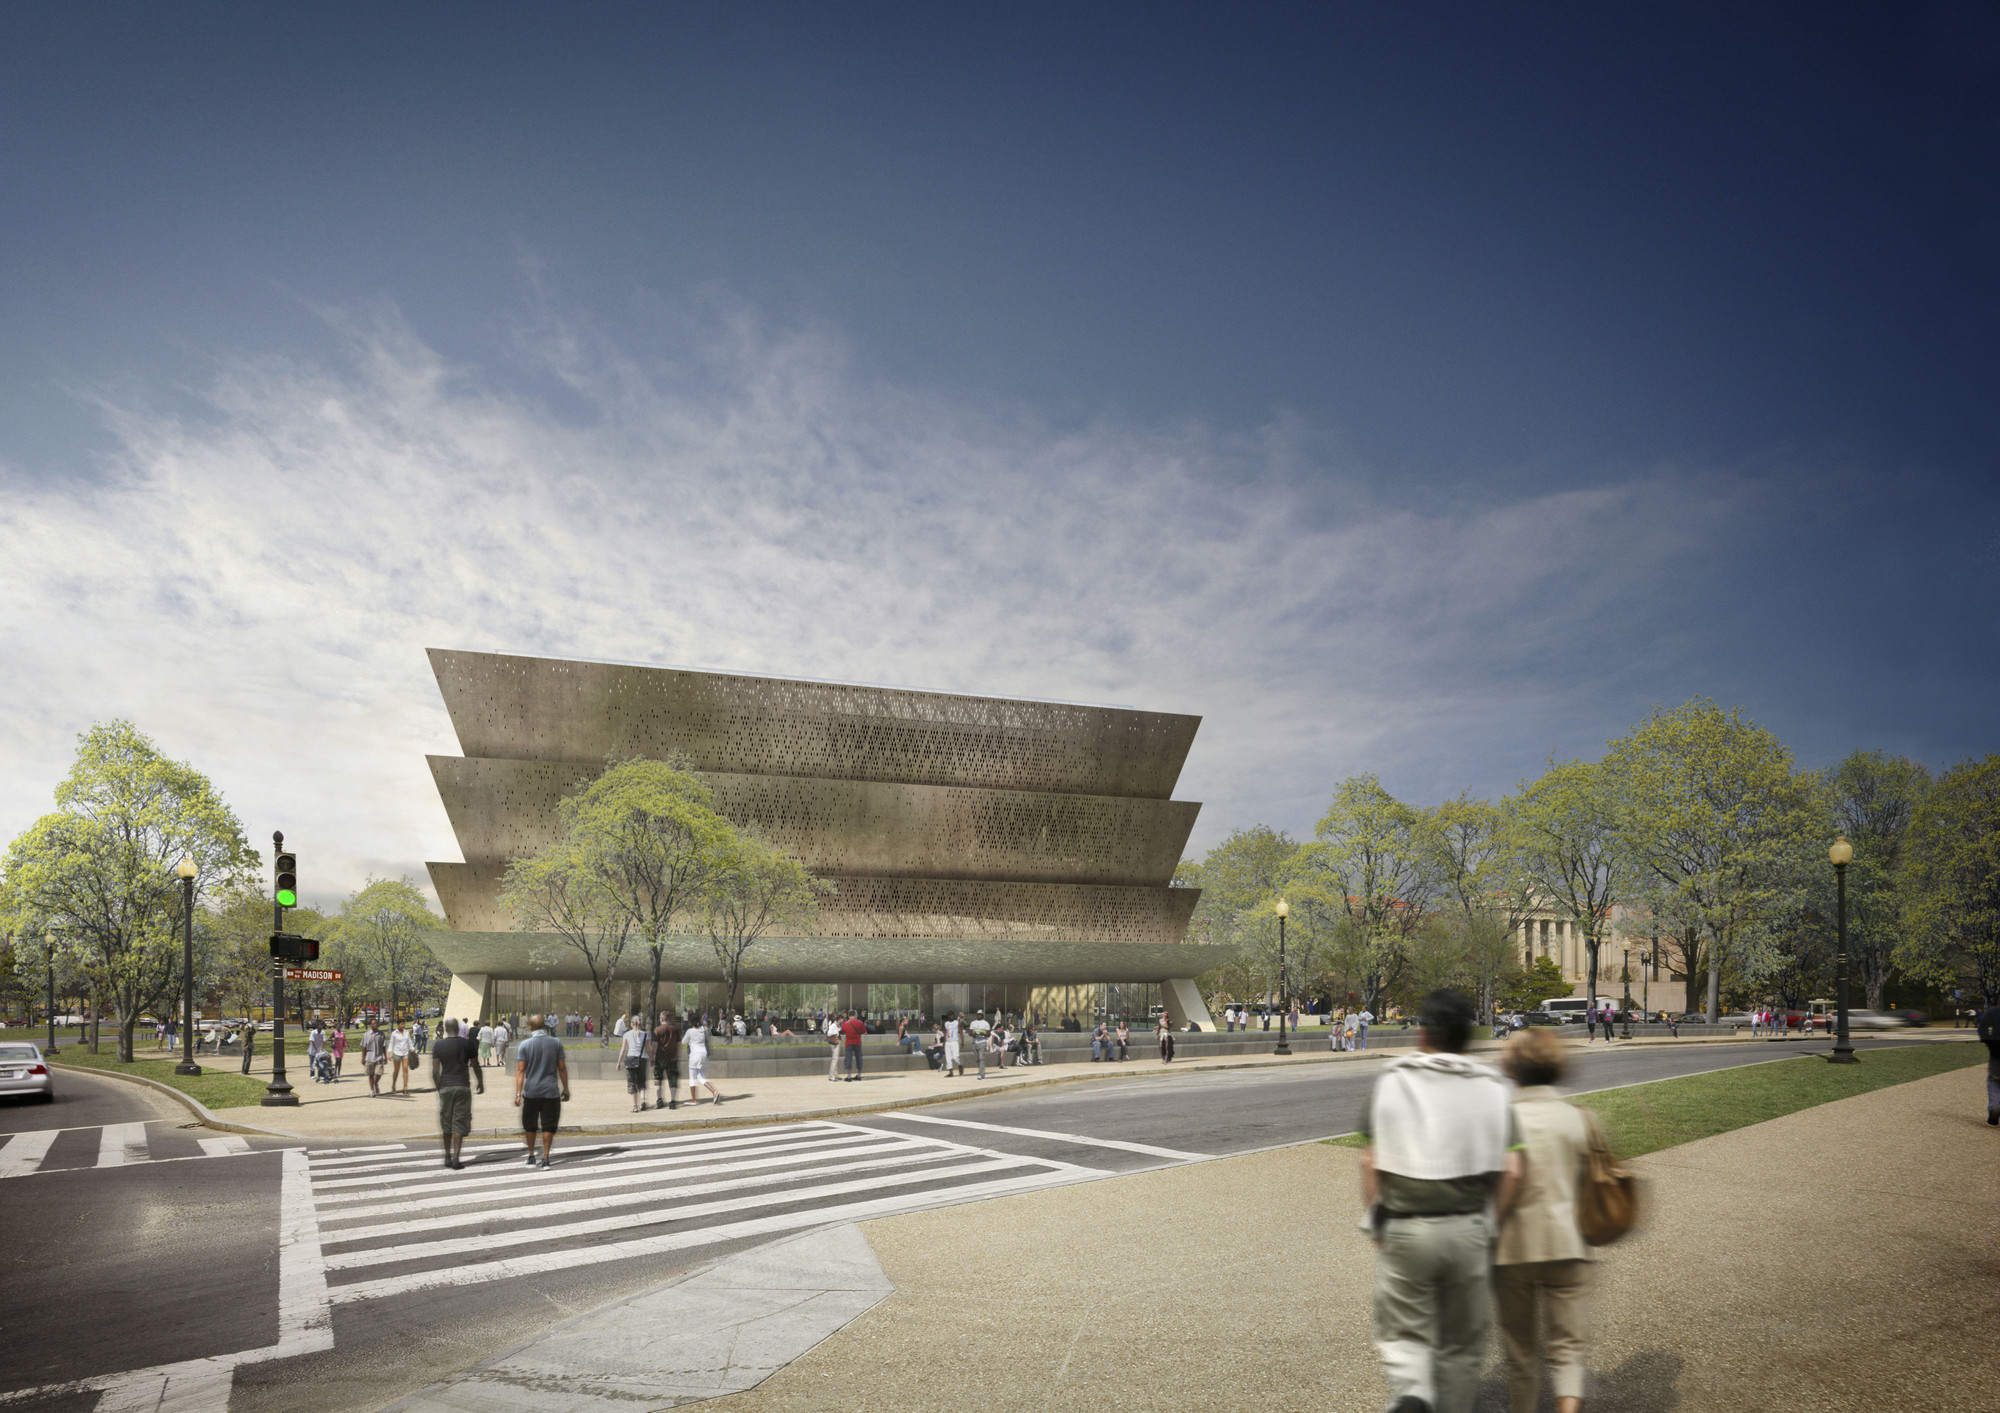 In Discussion With David Adjaye, Smithsonian National Museum of African American History and Culture. Image Courtesy of Adjaye Associates